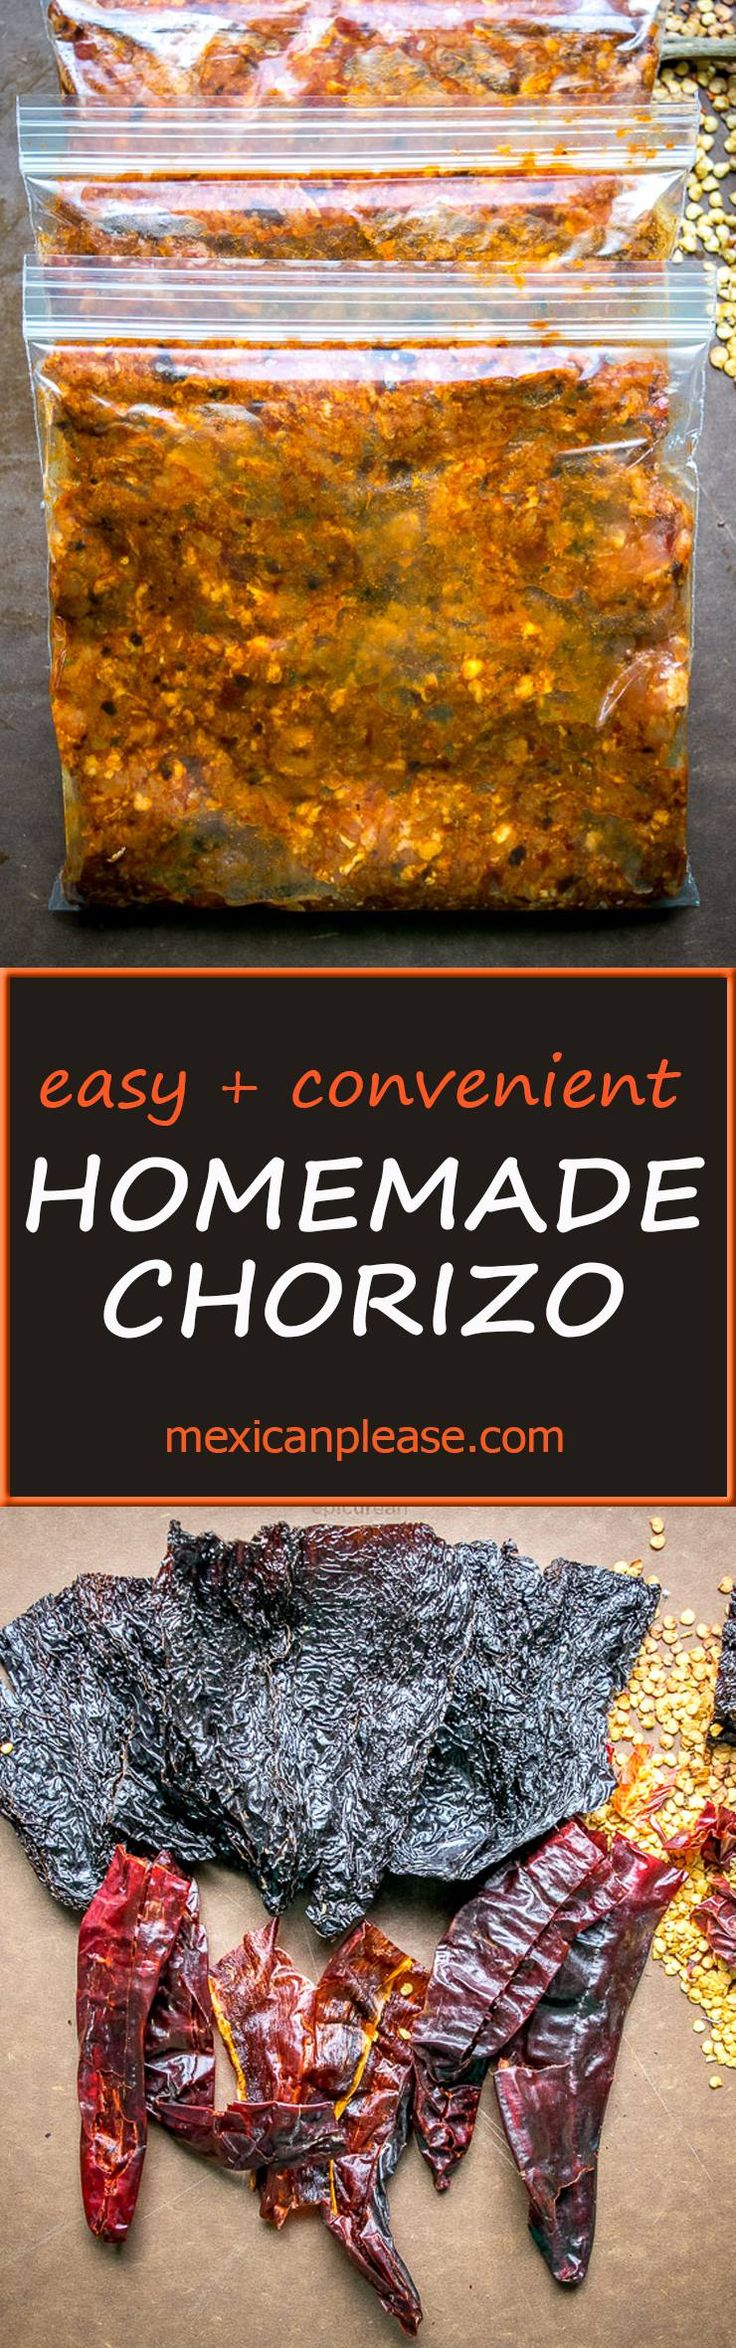 This is the express version of homemade chorizo.  All you really need is ground pork, some dried chili peppers, and a half hour.  So good!  mexicanplease.com